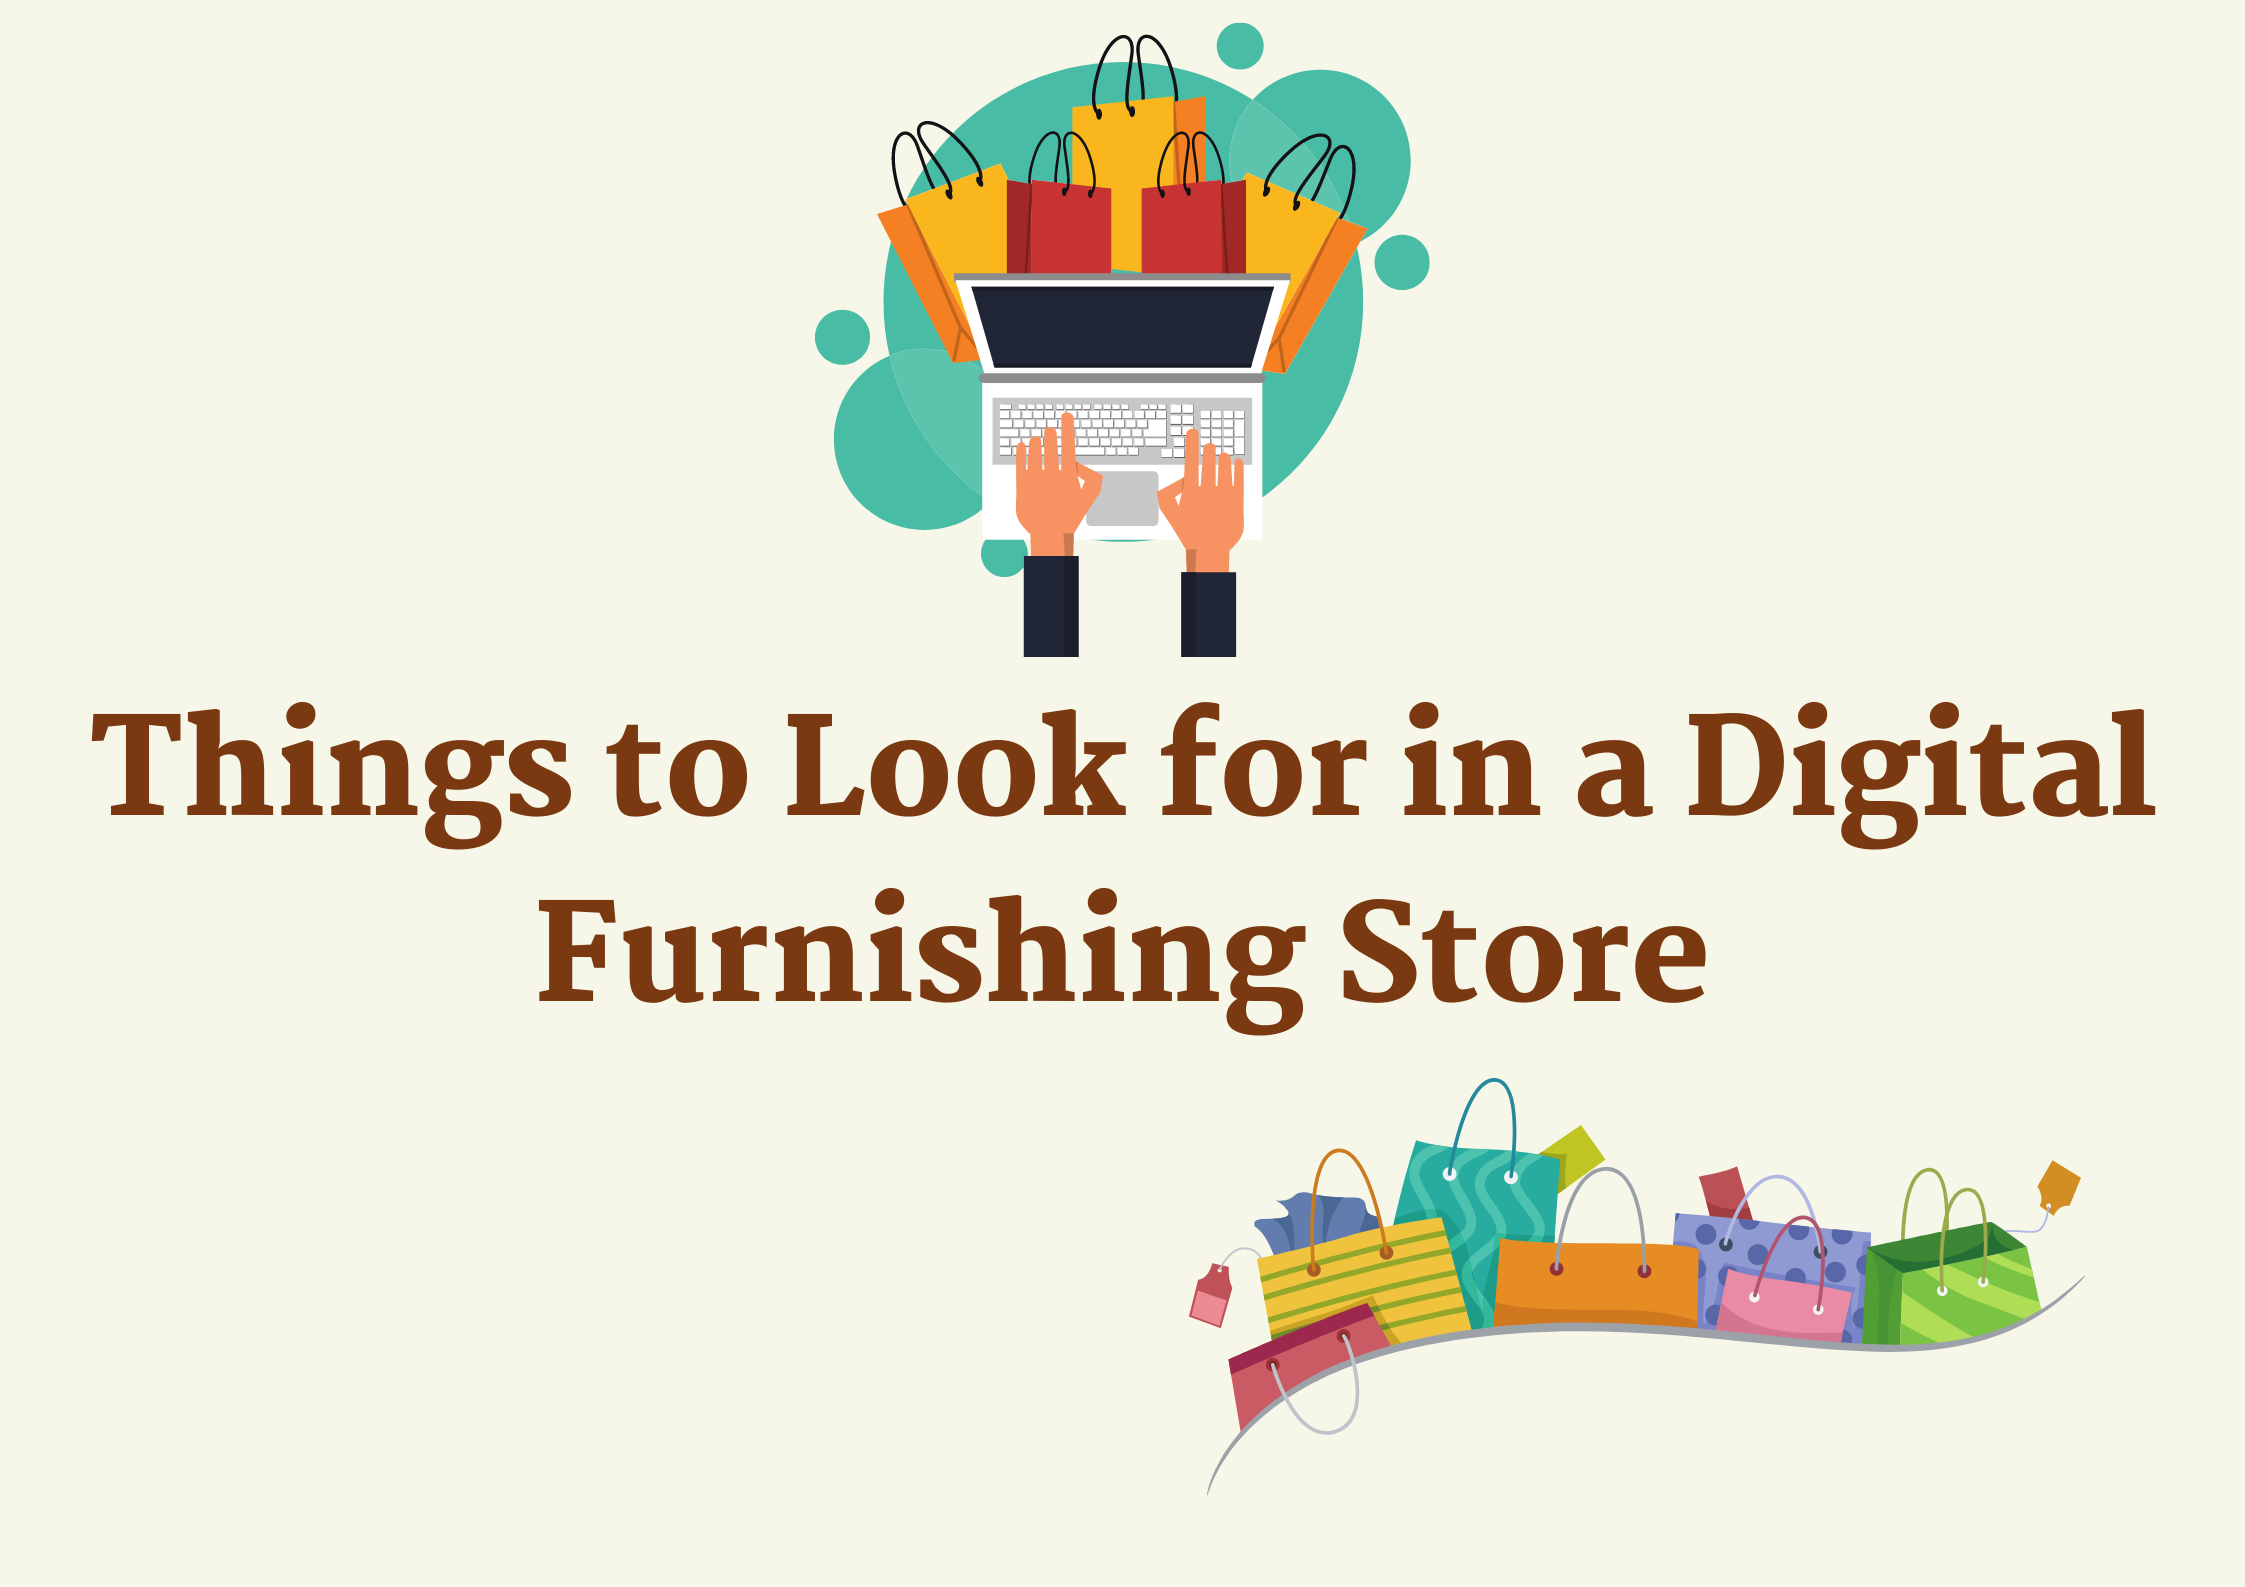 Things-to-Look-for-in-a-Digital-Furnishing-Store